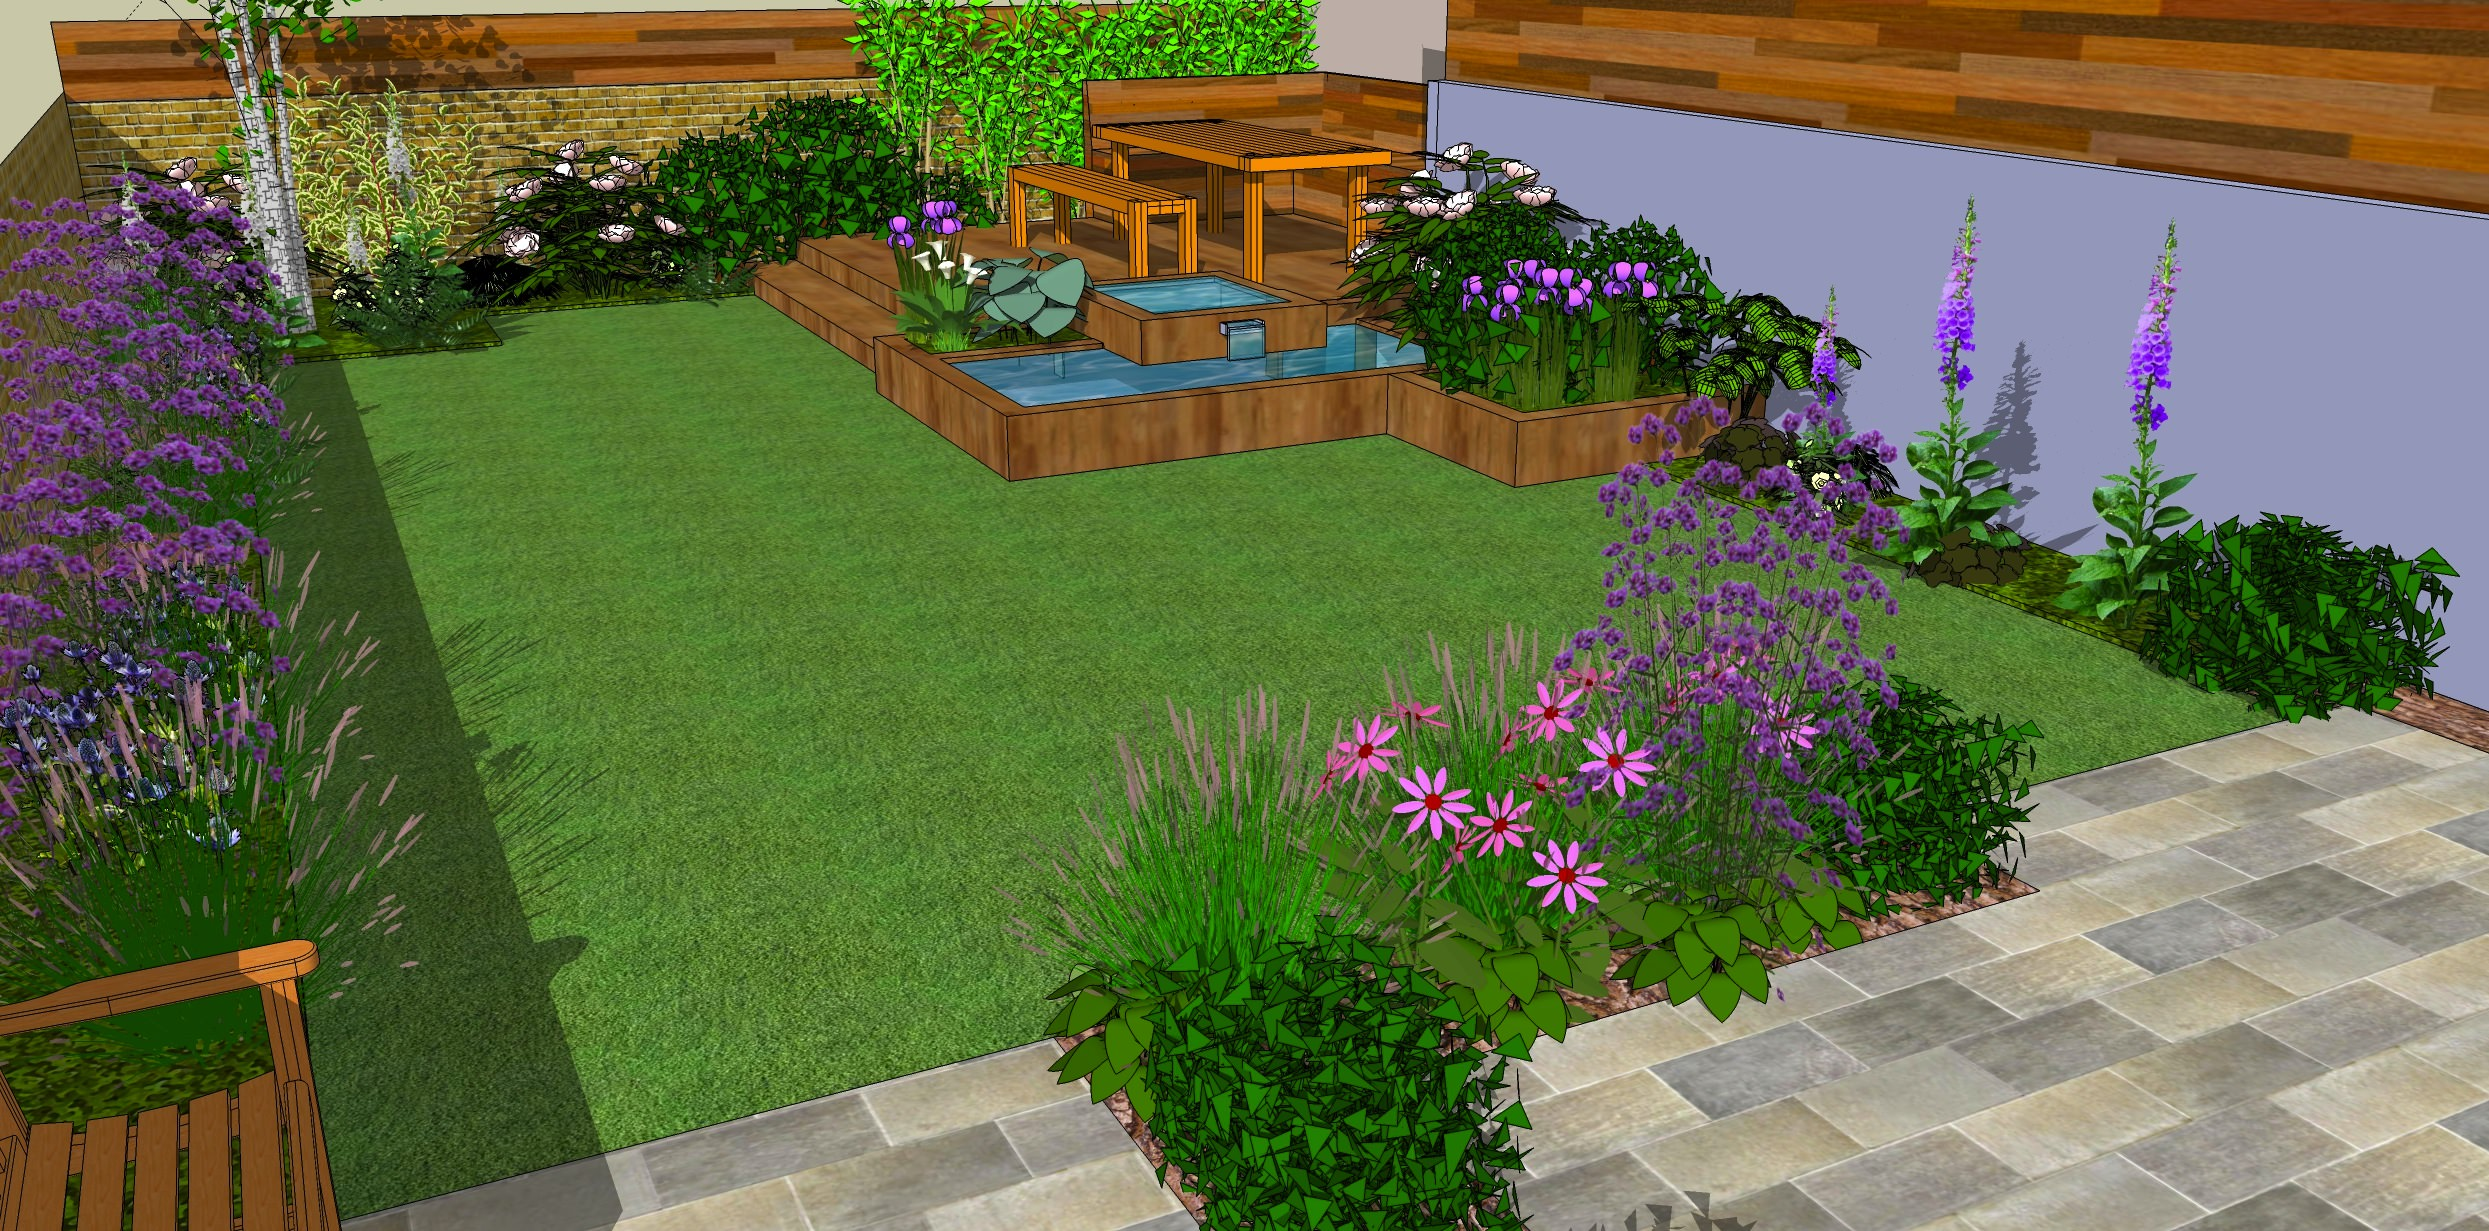 Low maintenance garden designs garden club london for Small simple garden design ideas